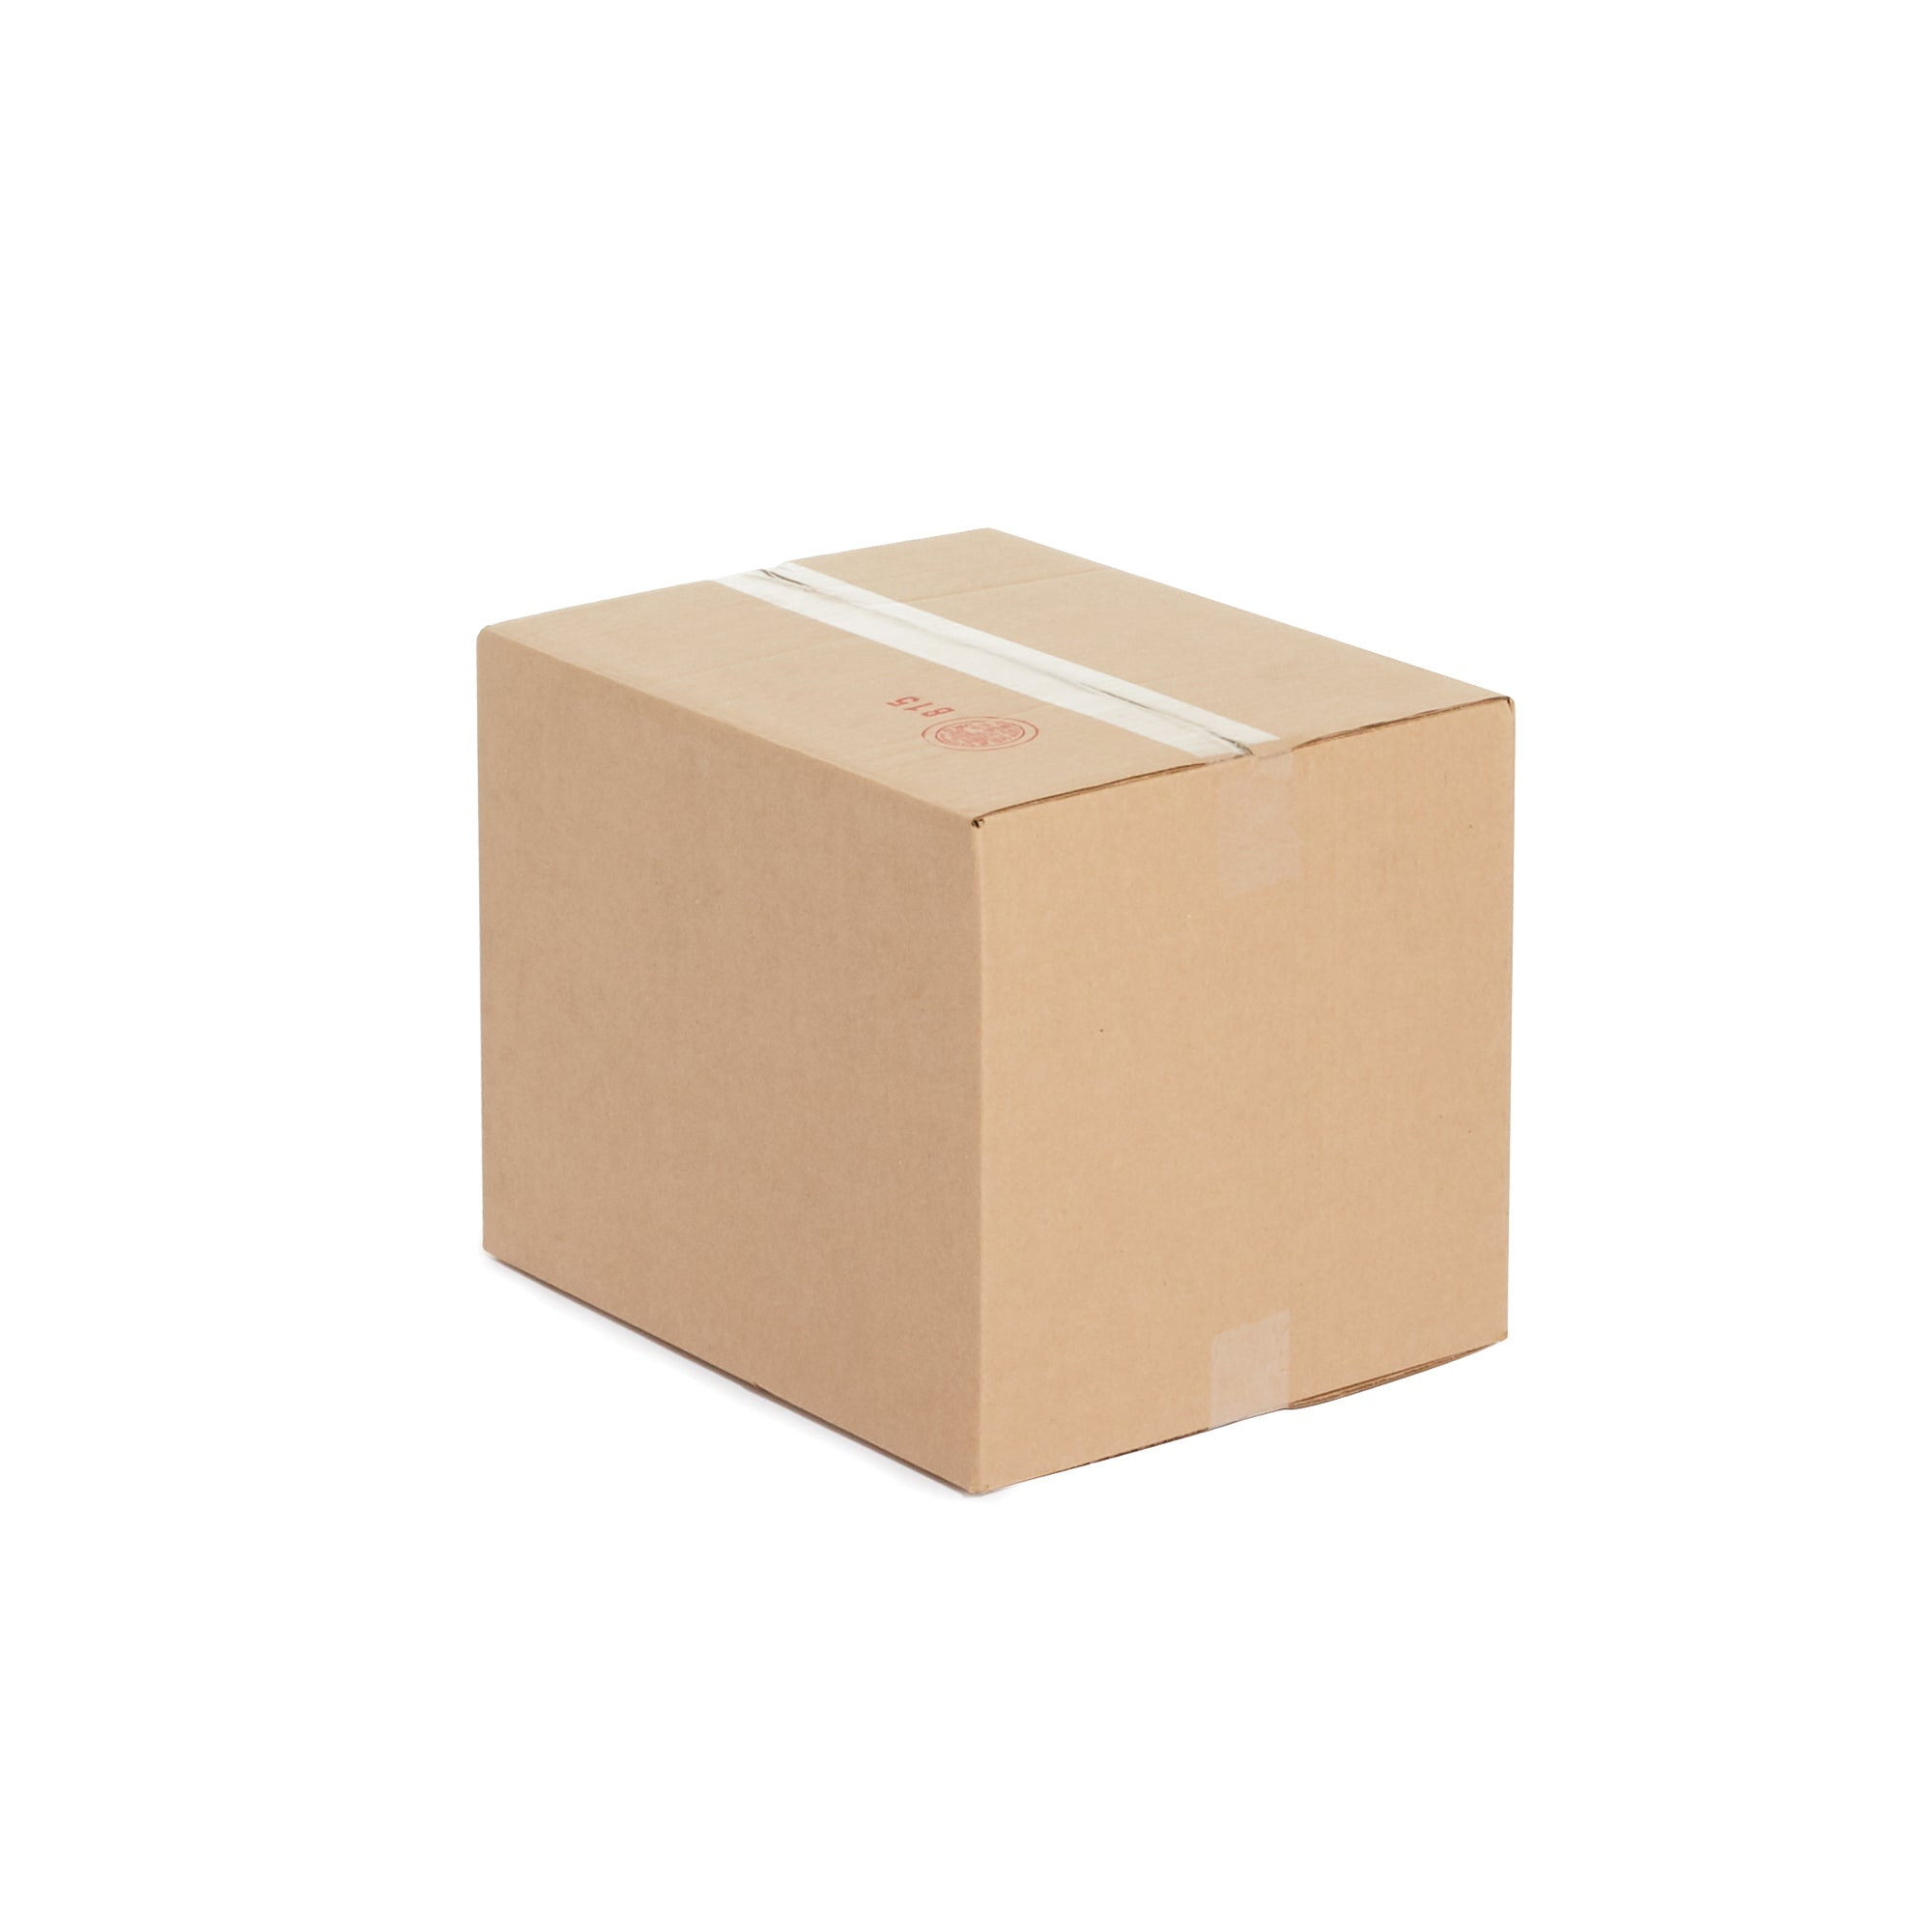 "Small Moving Box - 16"" x 13"" x 13"" Pack of 5"